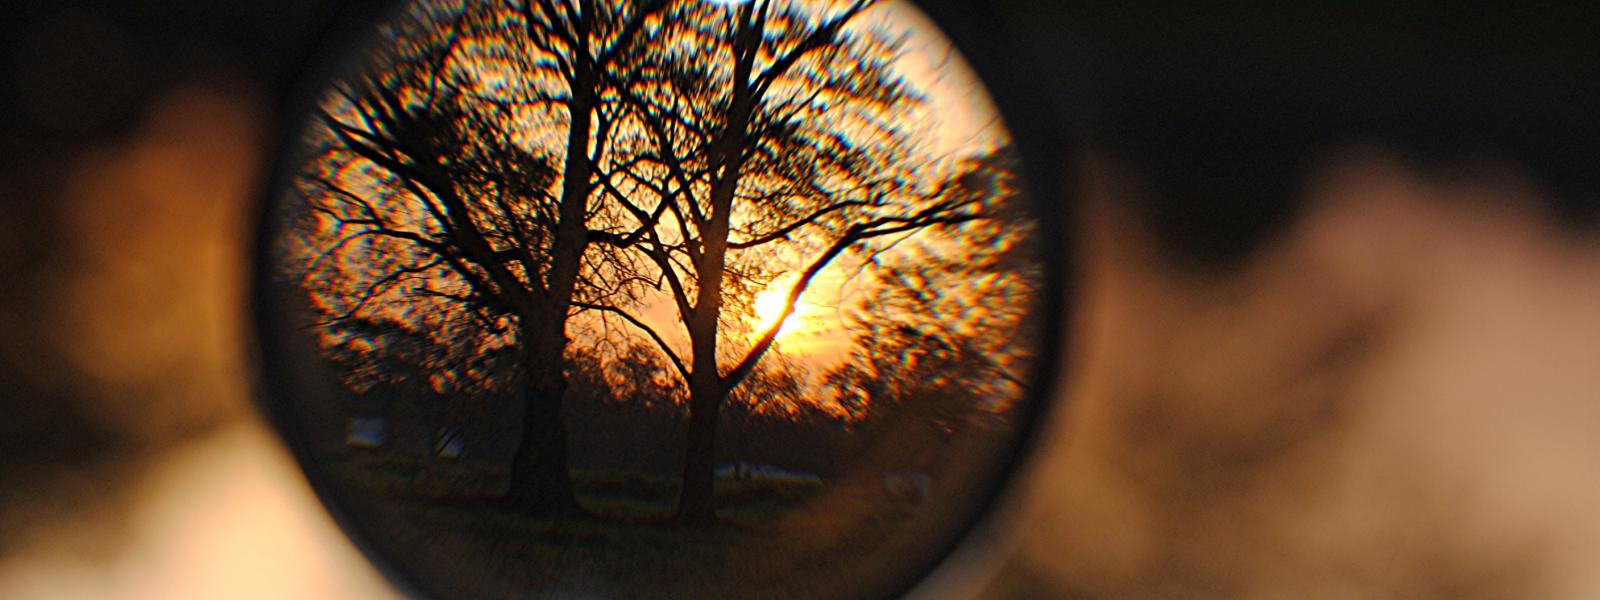 Sunrise viewed through a magnifying glass